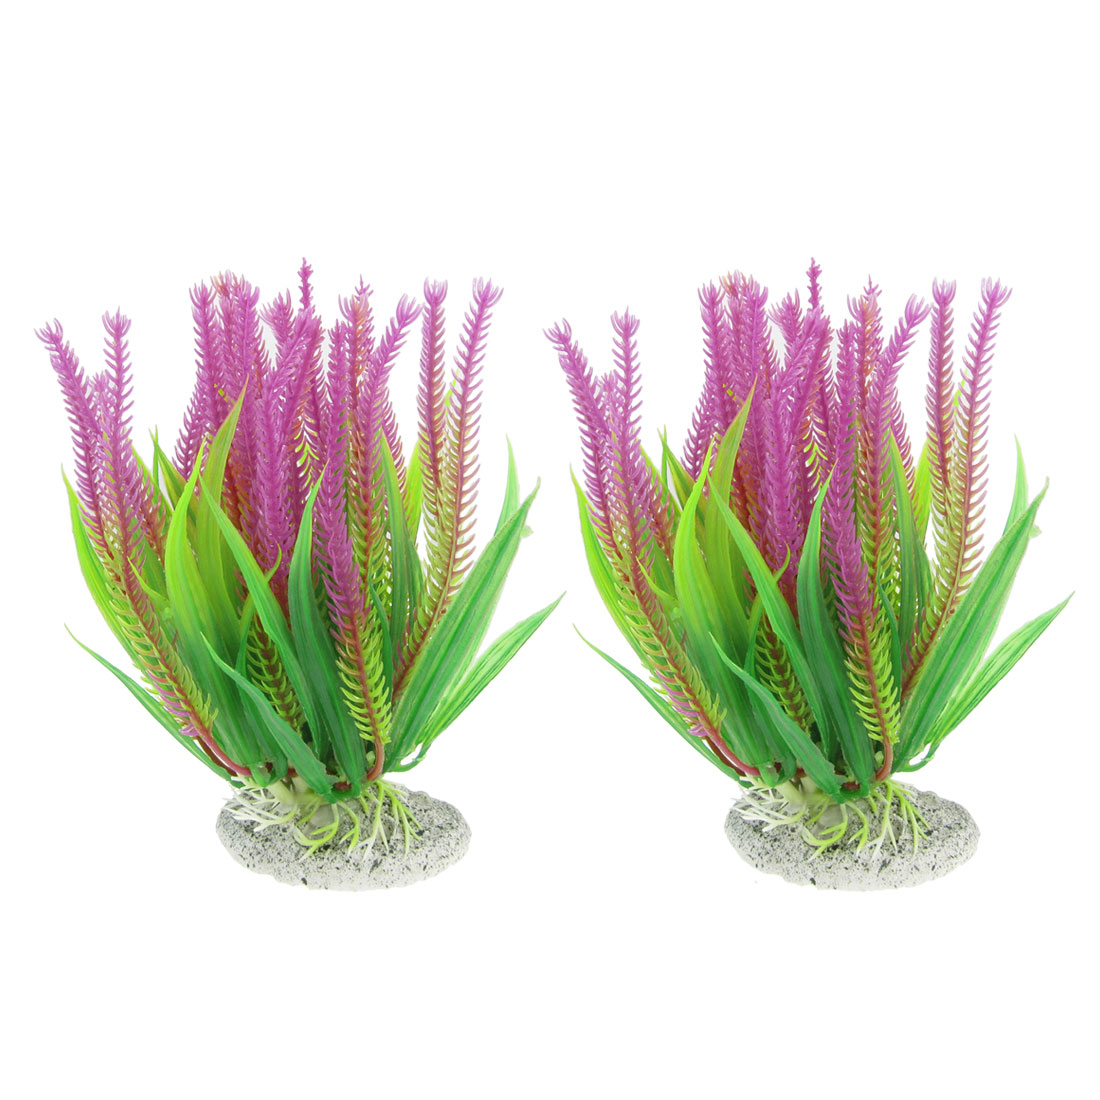 "5.1"" High Manmade Green Fuchsia Plastic Plant 2 Pcs for Fish Tank"